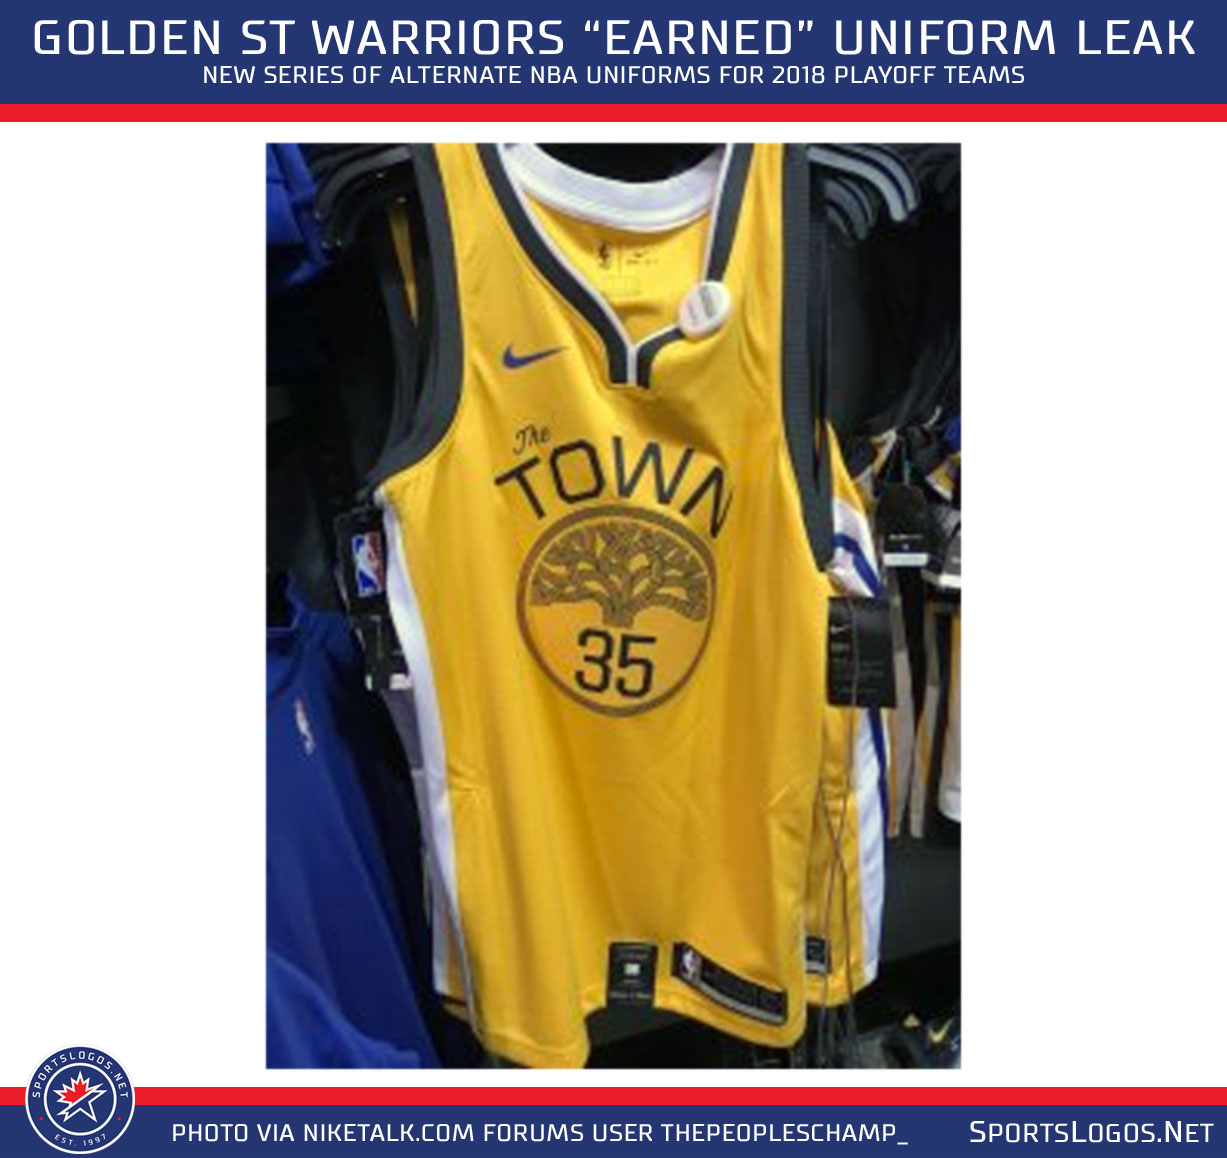 wholesale dealer 7709b 9c2f7 New Earned Uniforms for Heat, Jazz, Warriors Leak | Chris ...